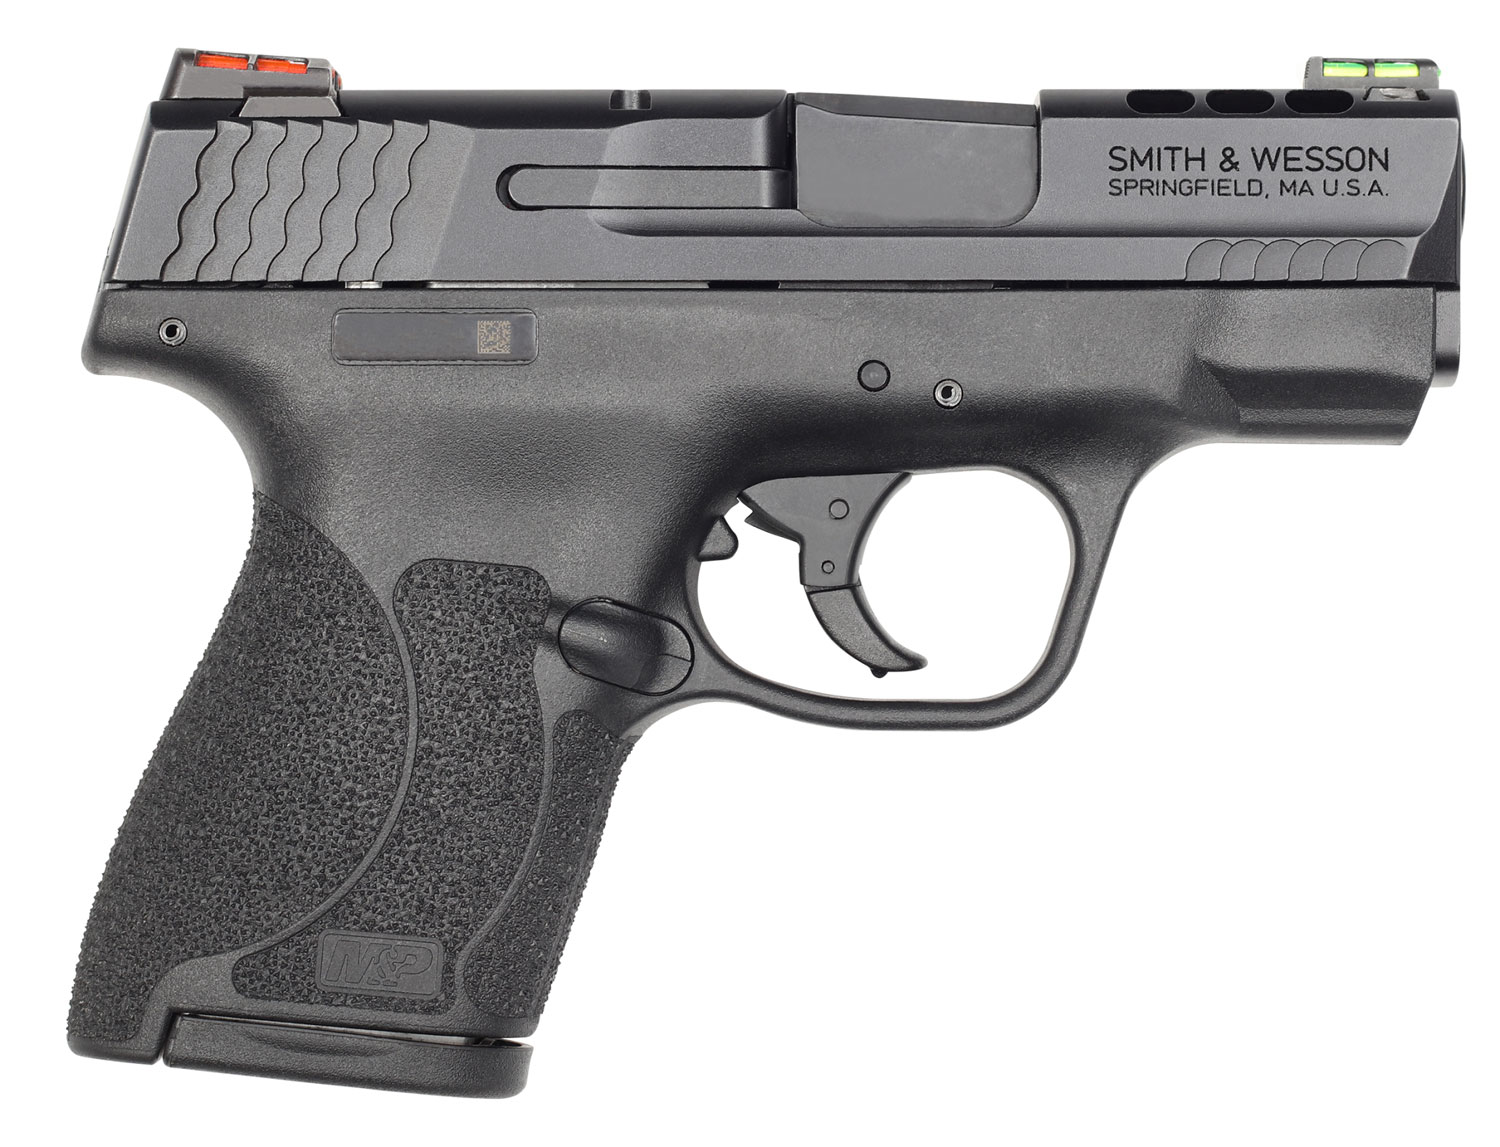 Smith & Wesson 11867 M&P Performance Center M2.0 9mm Luger Double 3.1